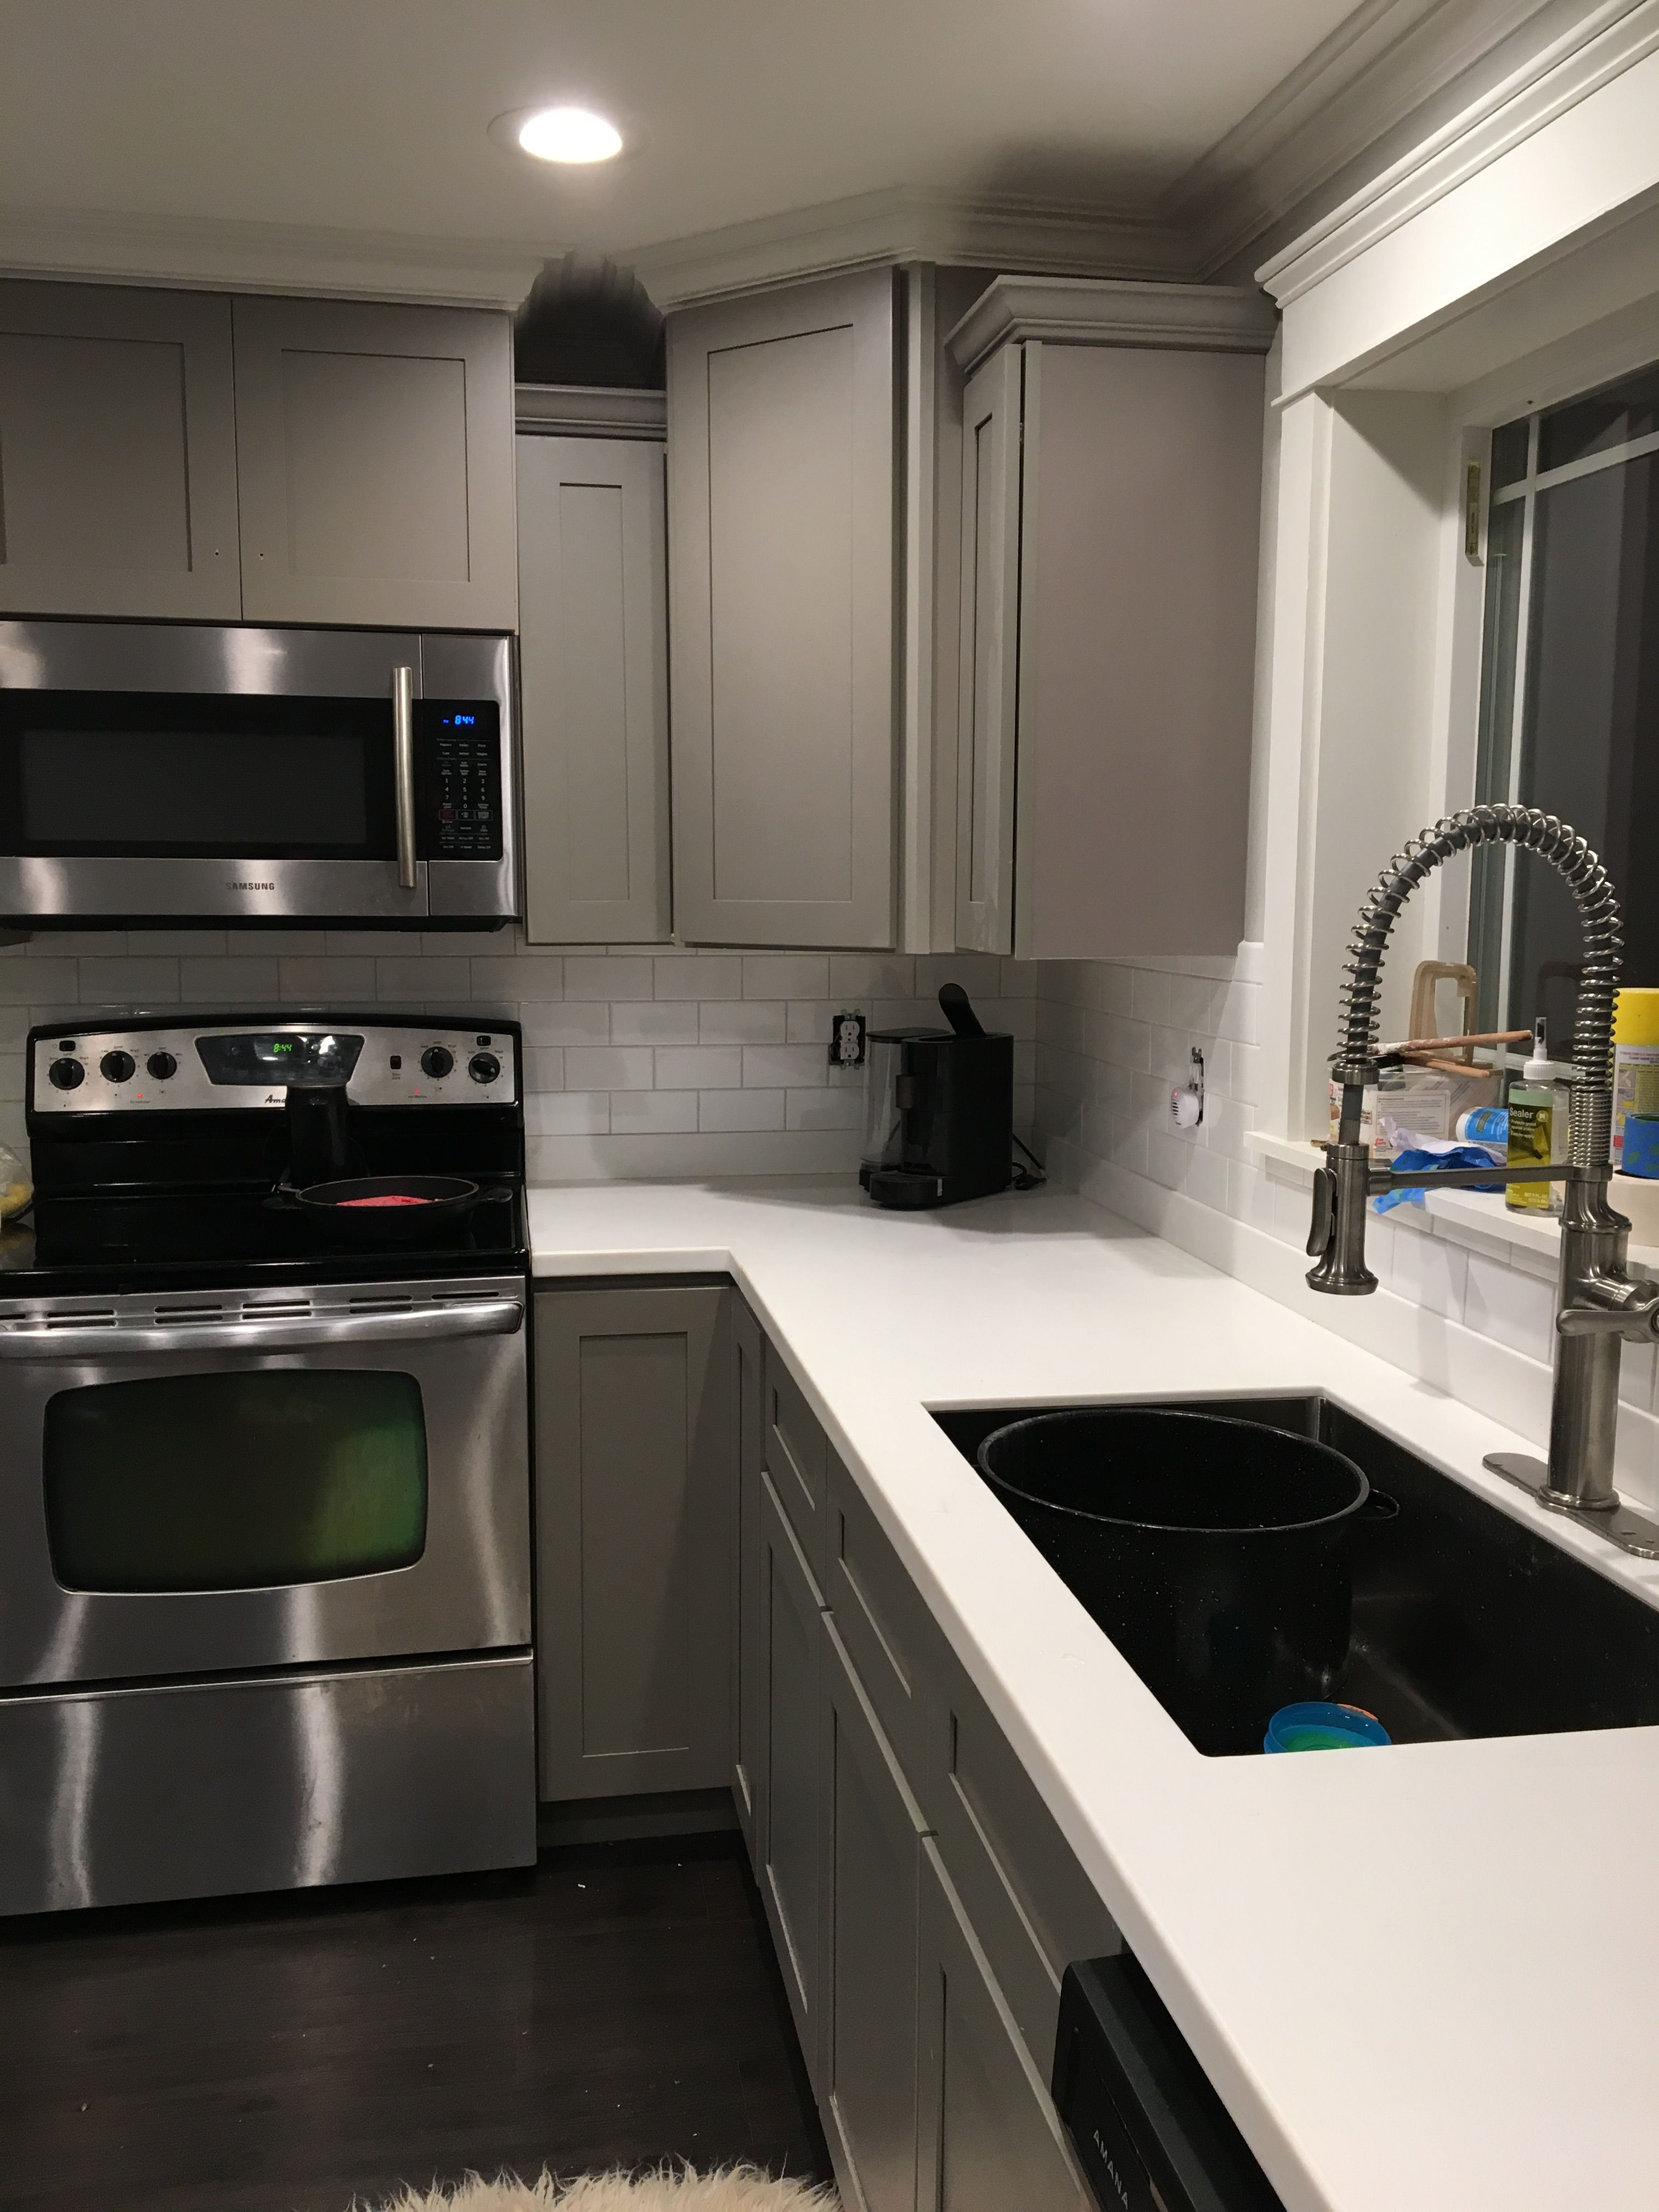 Grey kitchen cabinets with solid surface counter added subway tile and crown molding around ceilings also gray glass tiles quartz countertop farmhouse sink